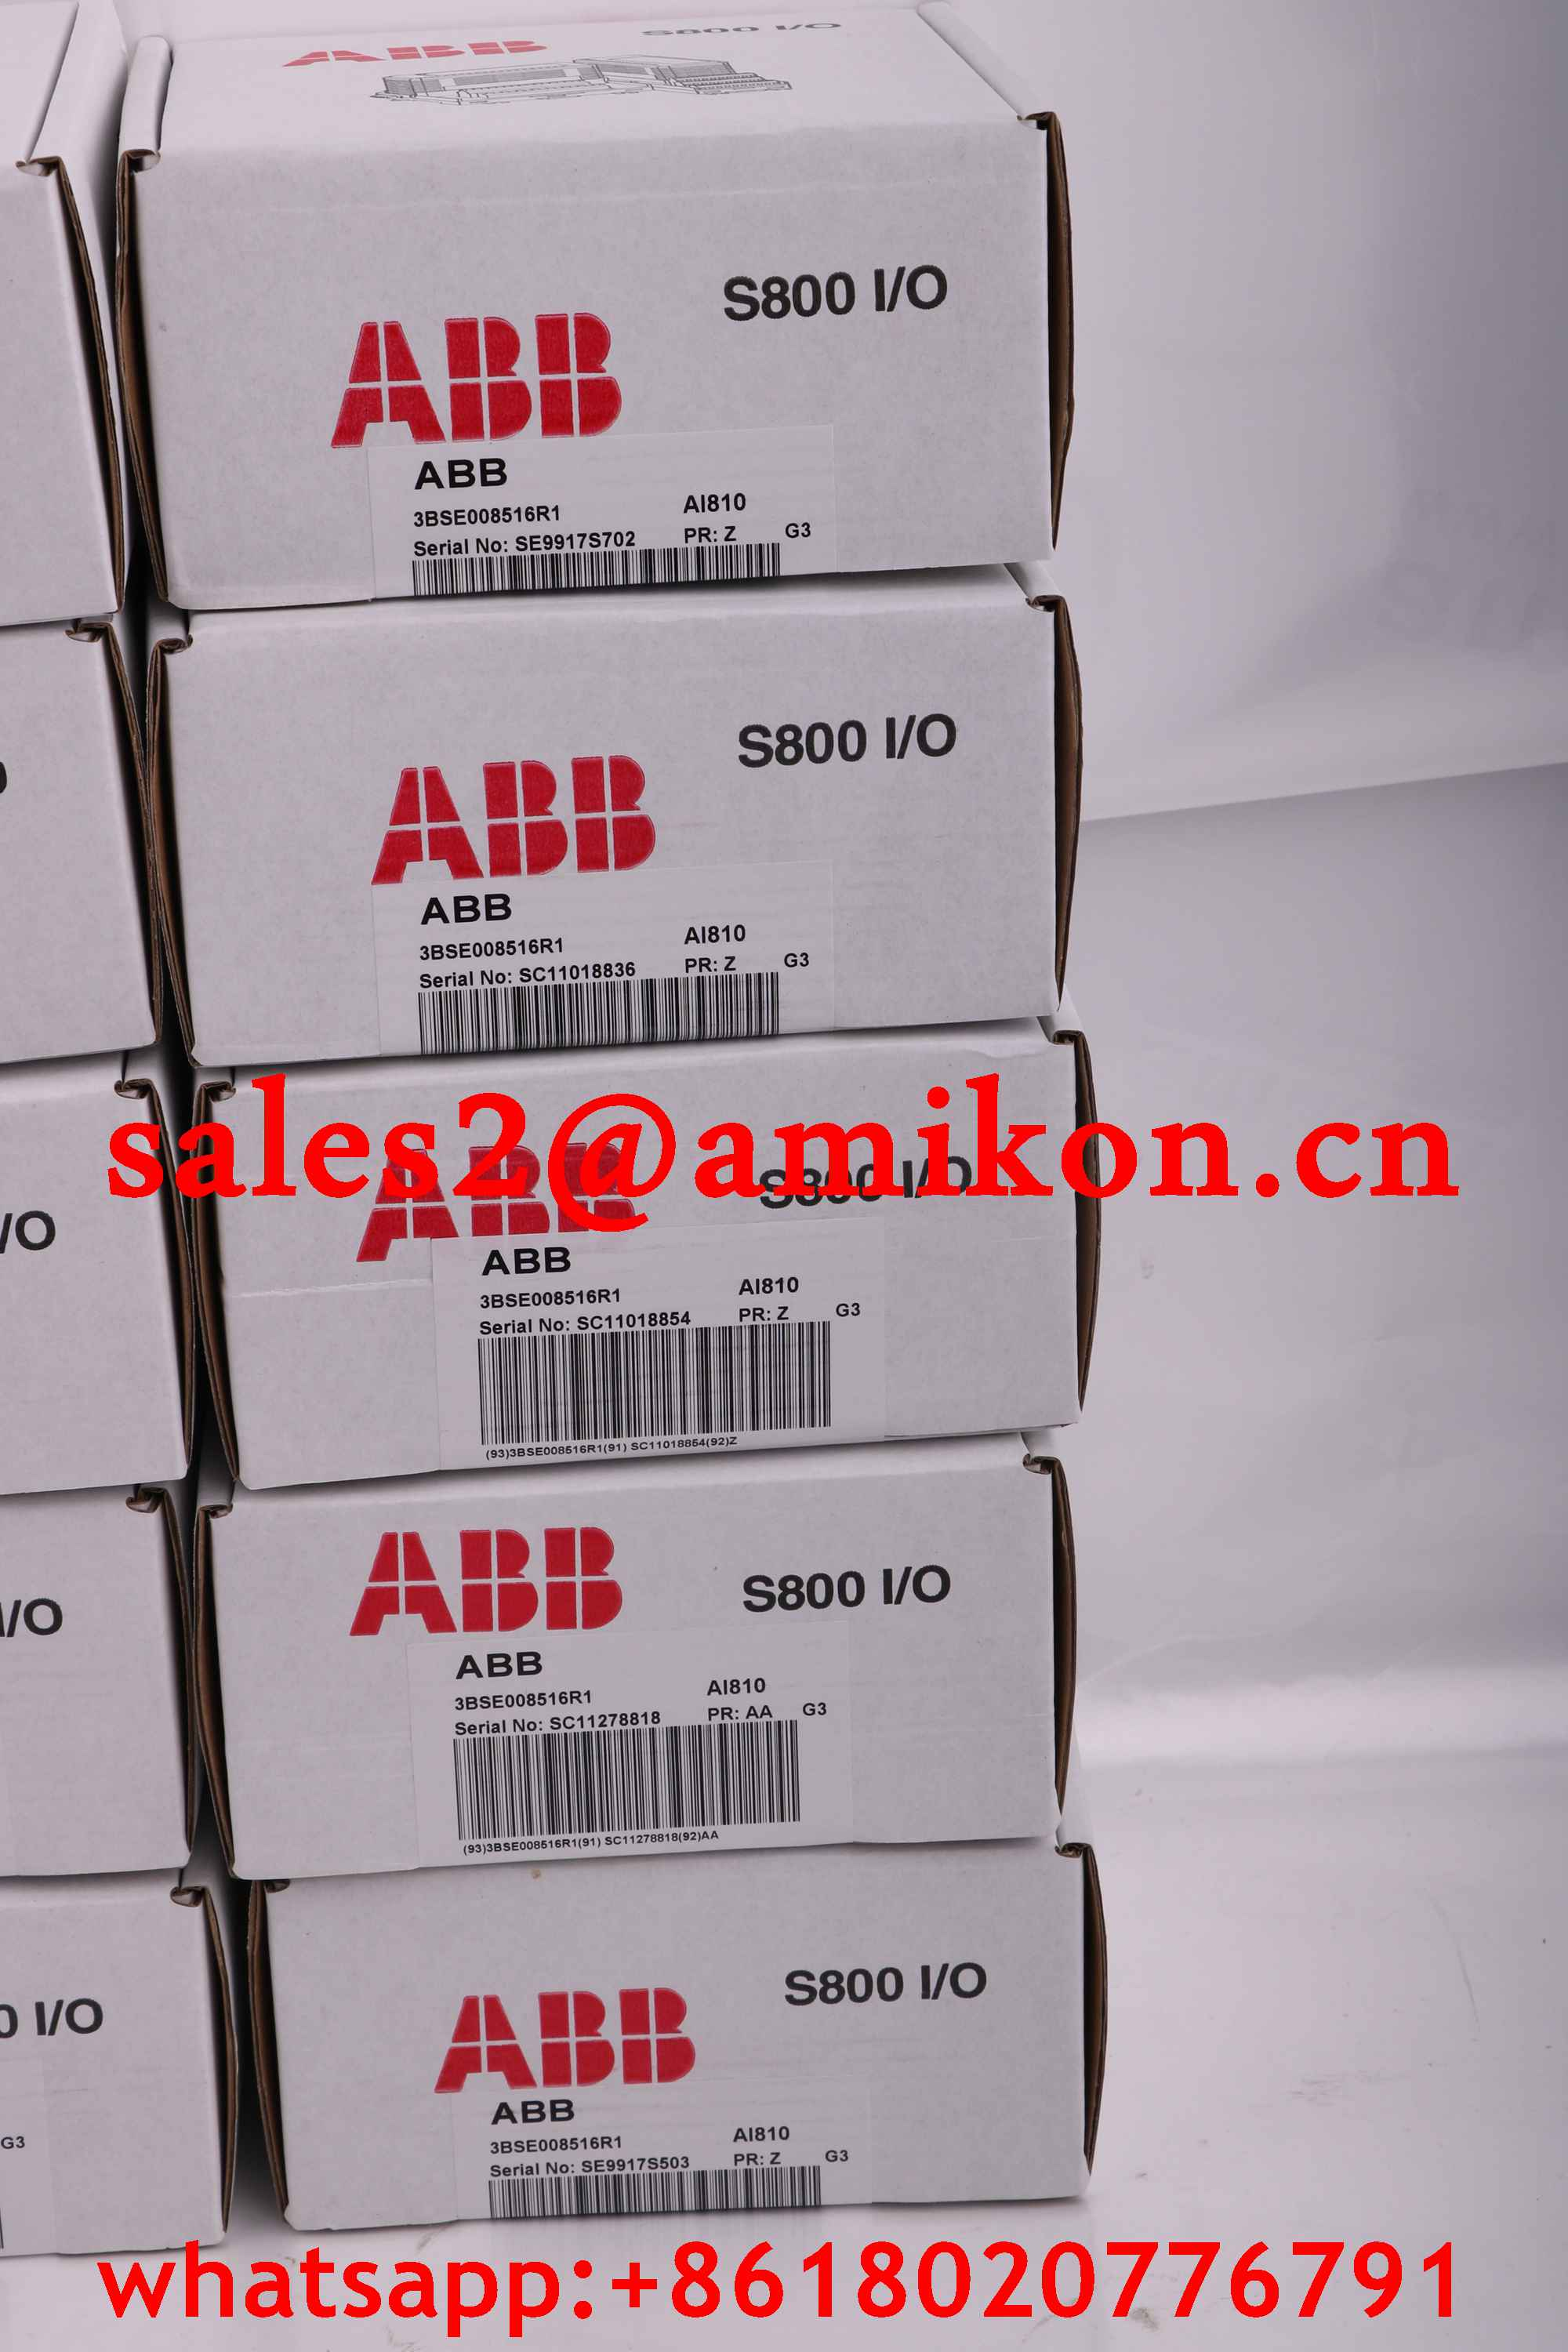 YB560103-BS DSQC 233 External axis board ABB | Robot spare parts | PLC DCS Parts T/T 100% New In stock